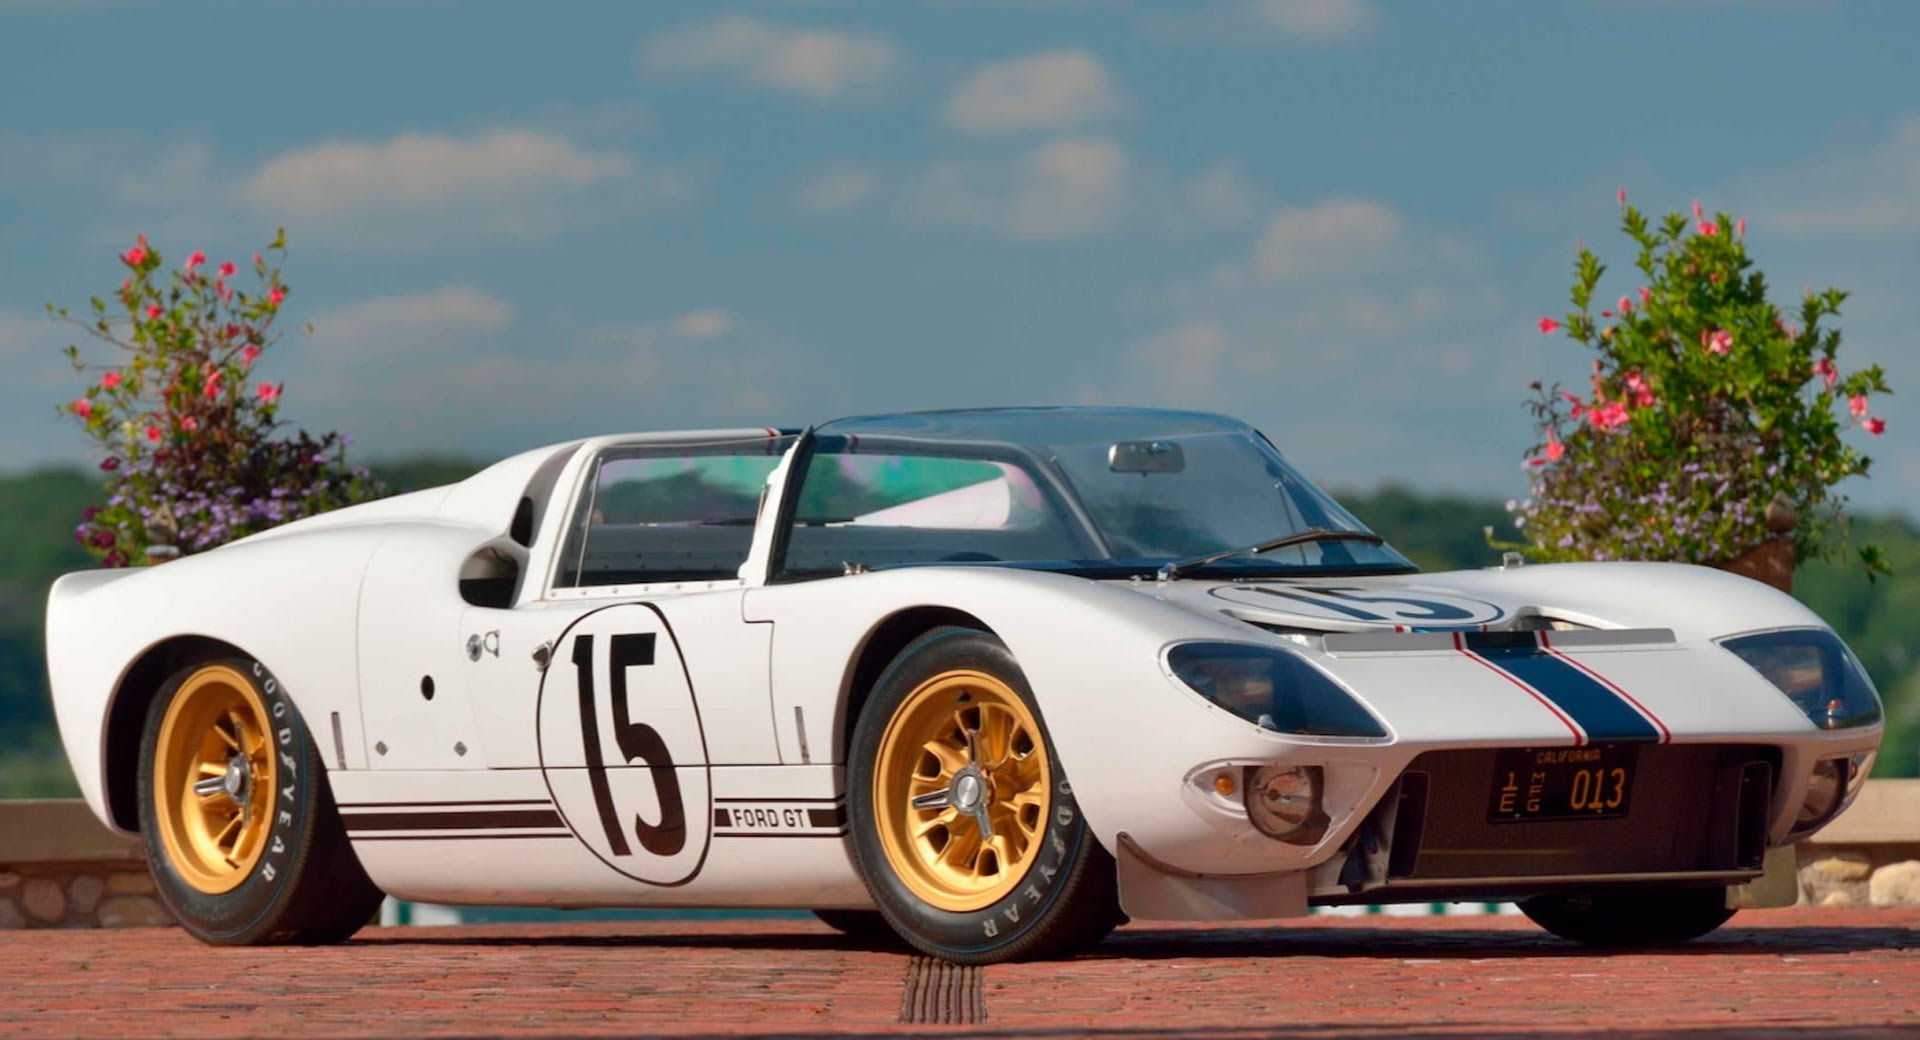 Ford GT Roadster Prototype 1965 in auction (1)